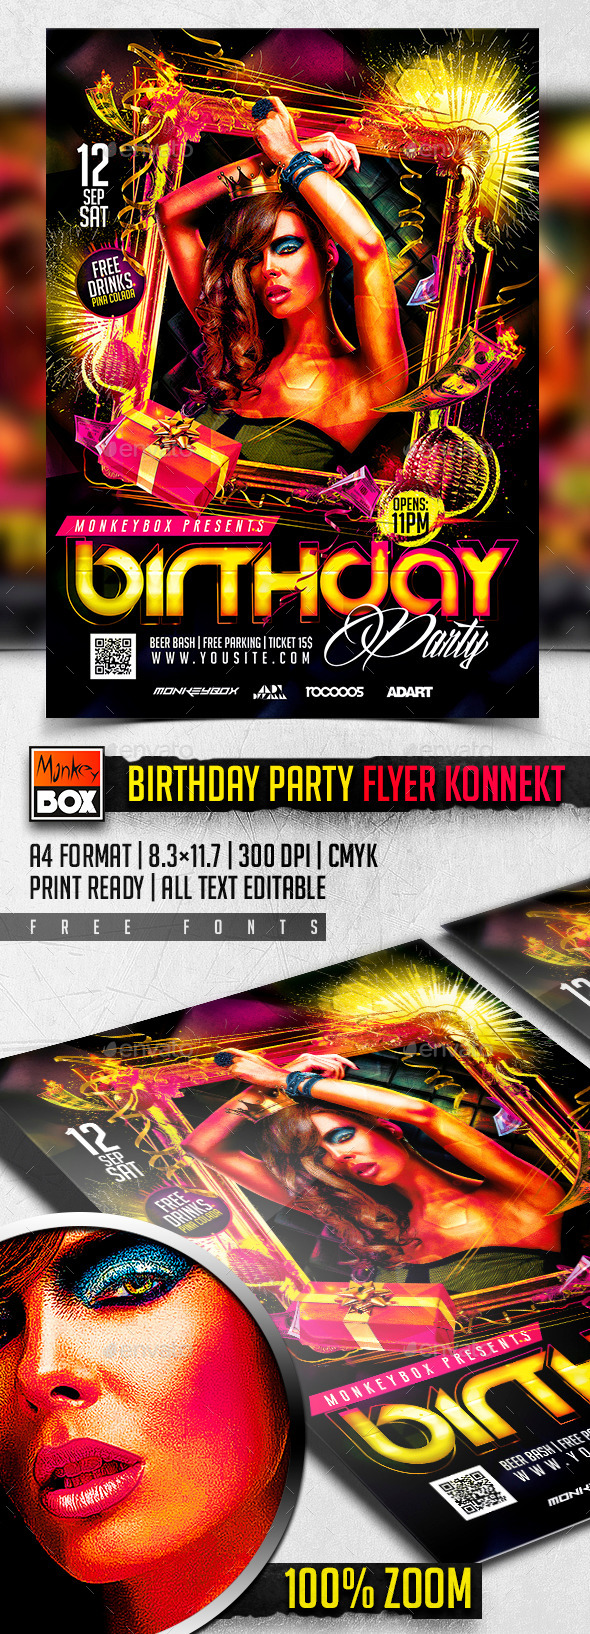 Birthday Party Flyer Konnekt